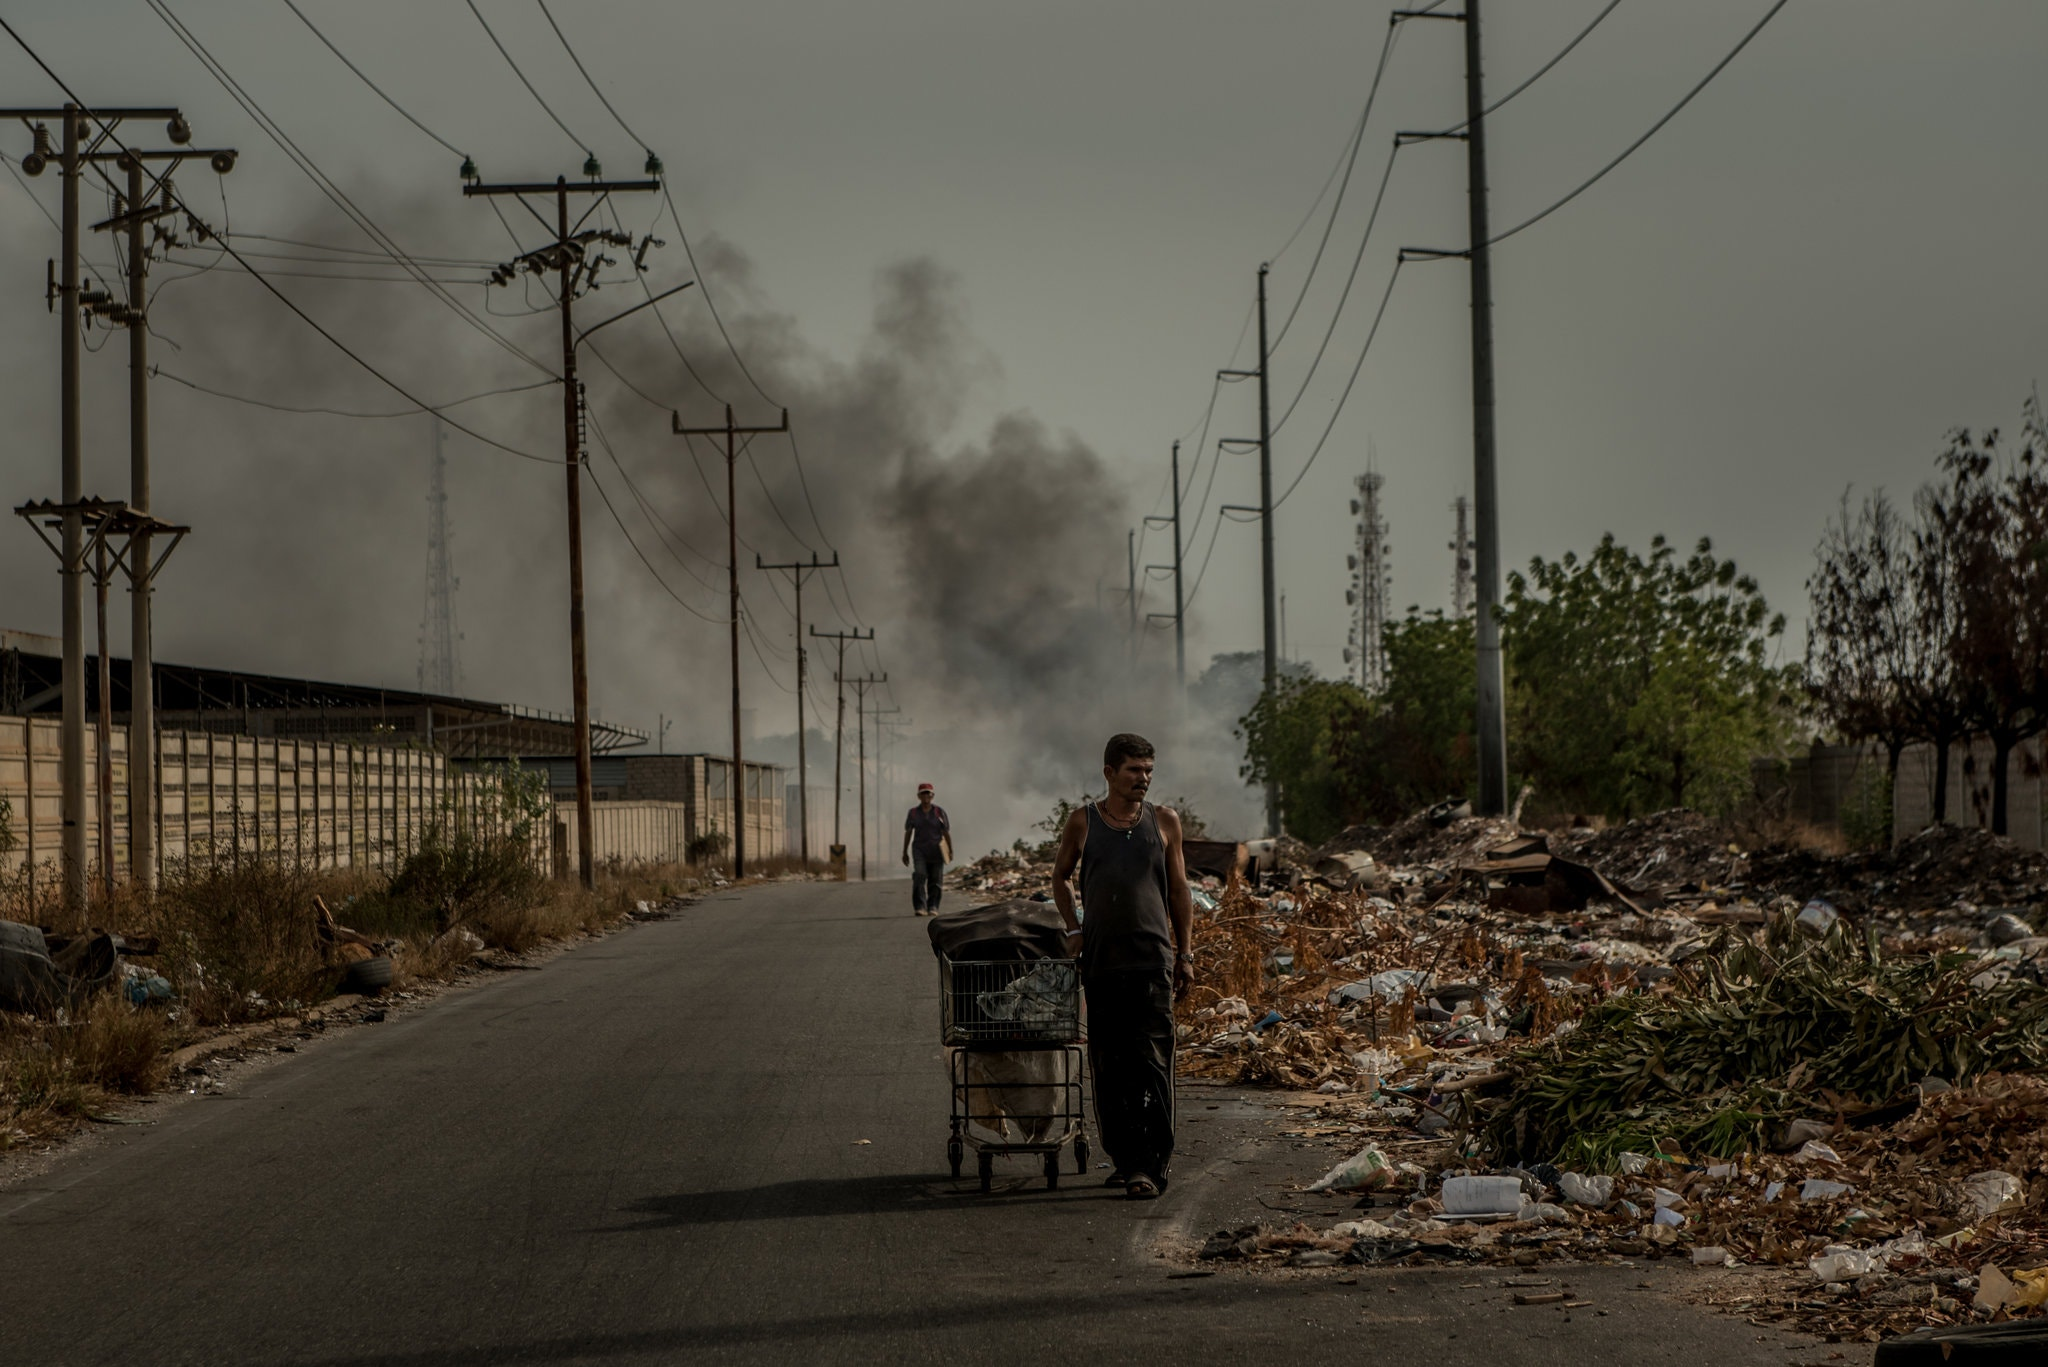 In Maracaibo, men searching for refuse that can be salvaged or recycled.Credit Meridith Kohut for The New York Times